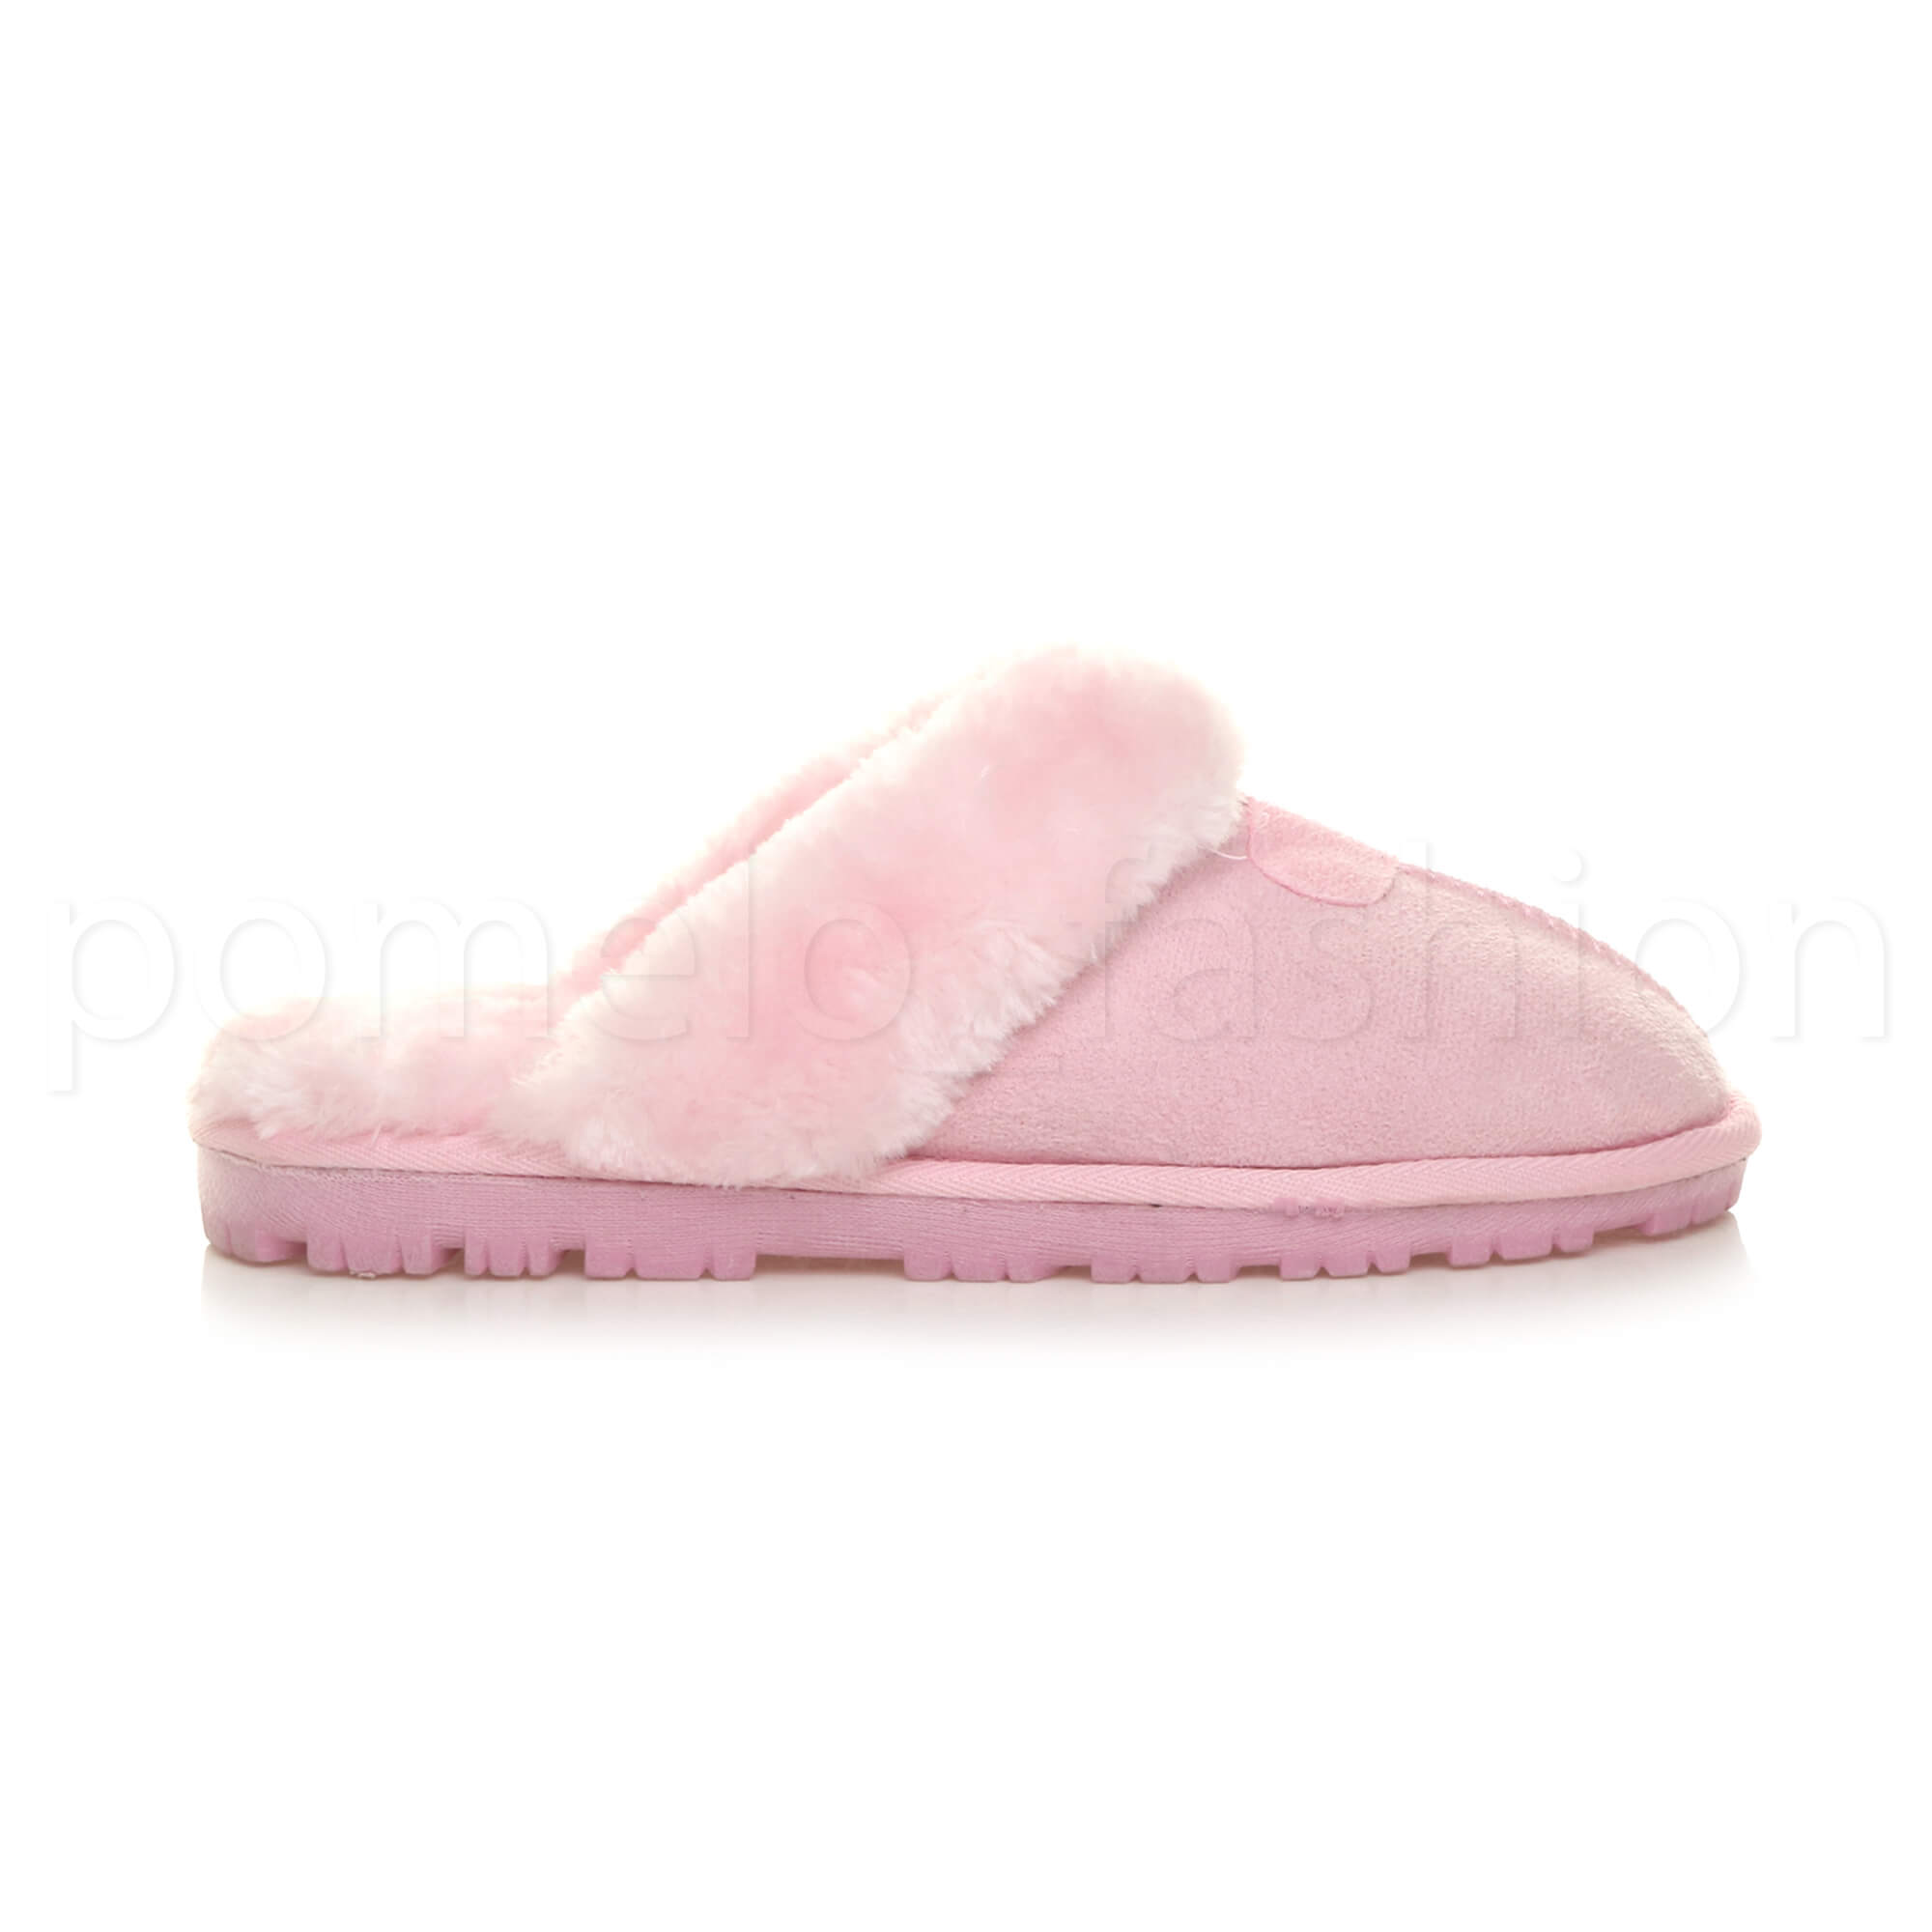 WOMENS-LADIES-FLAT-FUR-LINED-COMFORTABLE-WINTER-MULES-SLIPPERS-HOUSE-SHOES-SIZE thumbnail 66